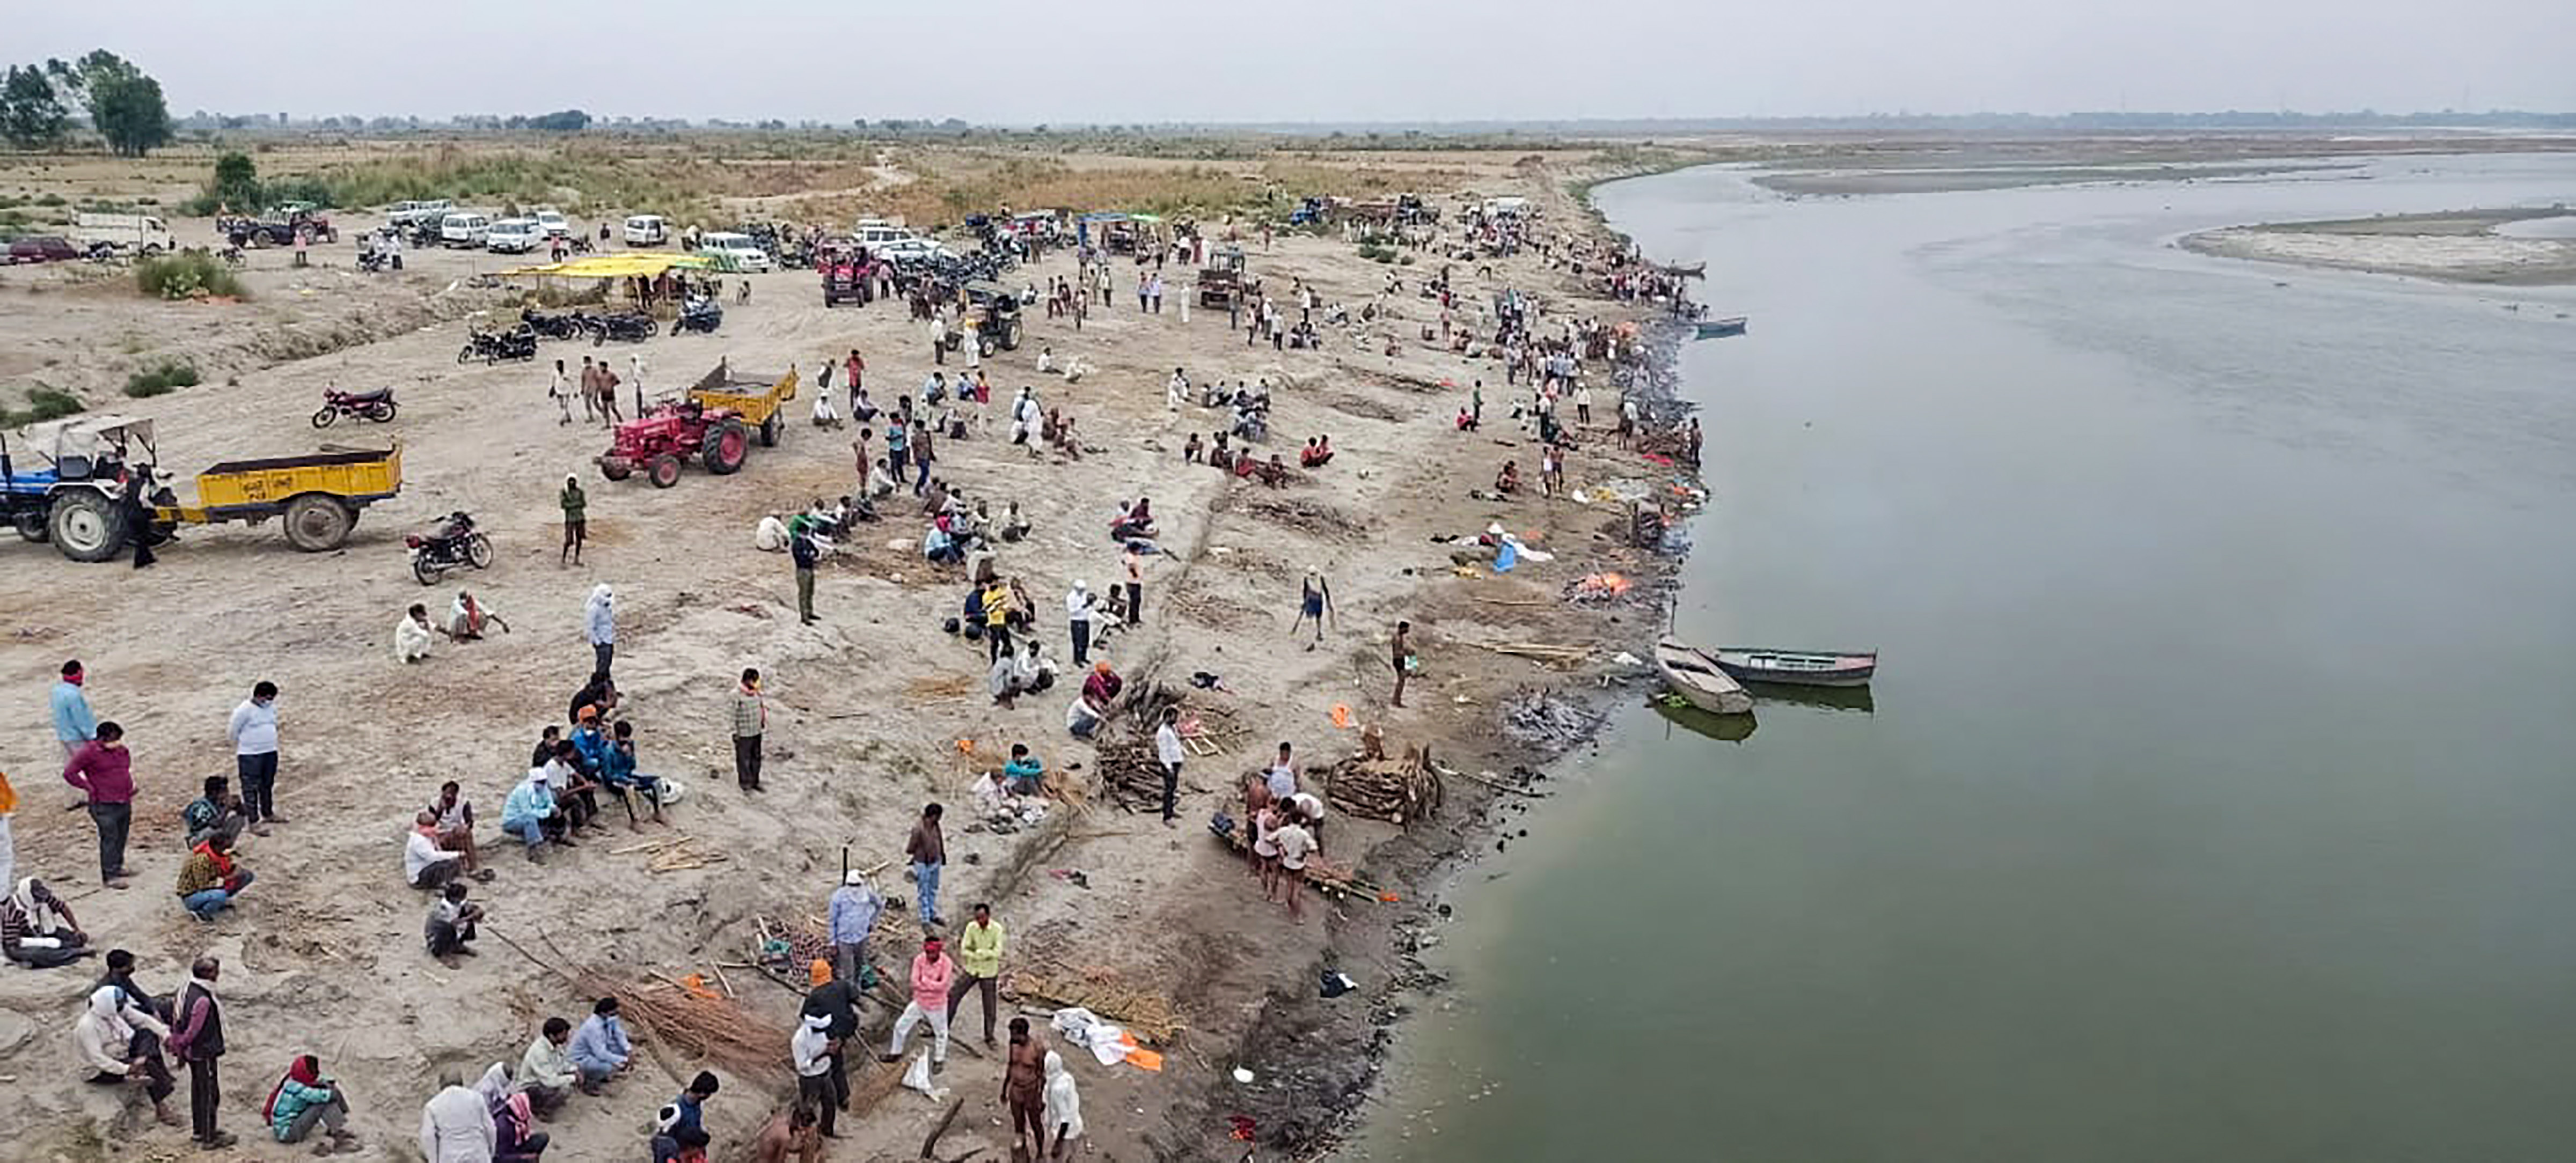 Unnao: Relatives and family wait to cremate on the banks of River Ganga, in Unnao, Thursday, May 13, 2021. (PTI Photo)(PTI05_13_2021_000100B)